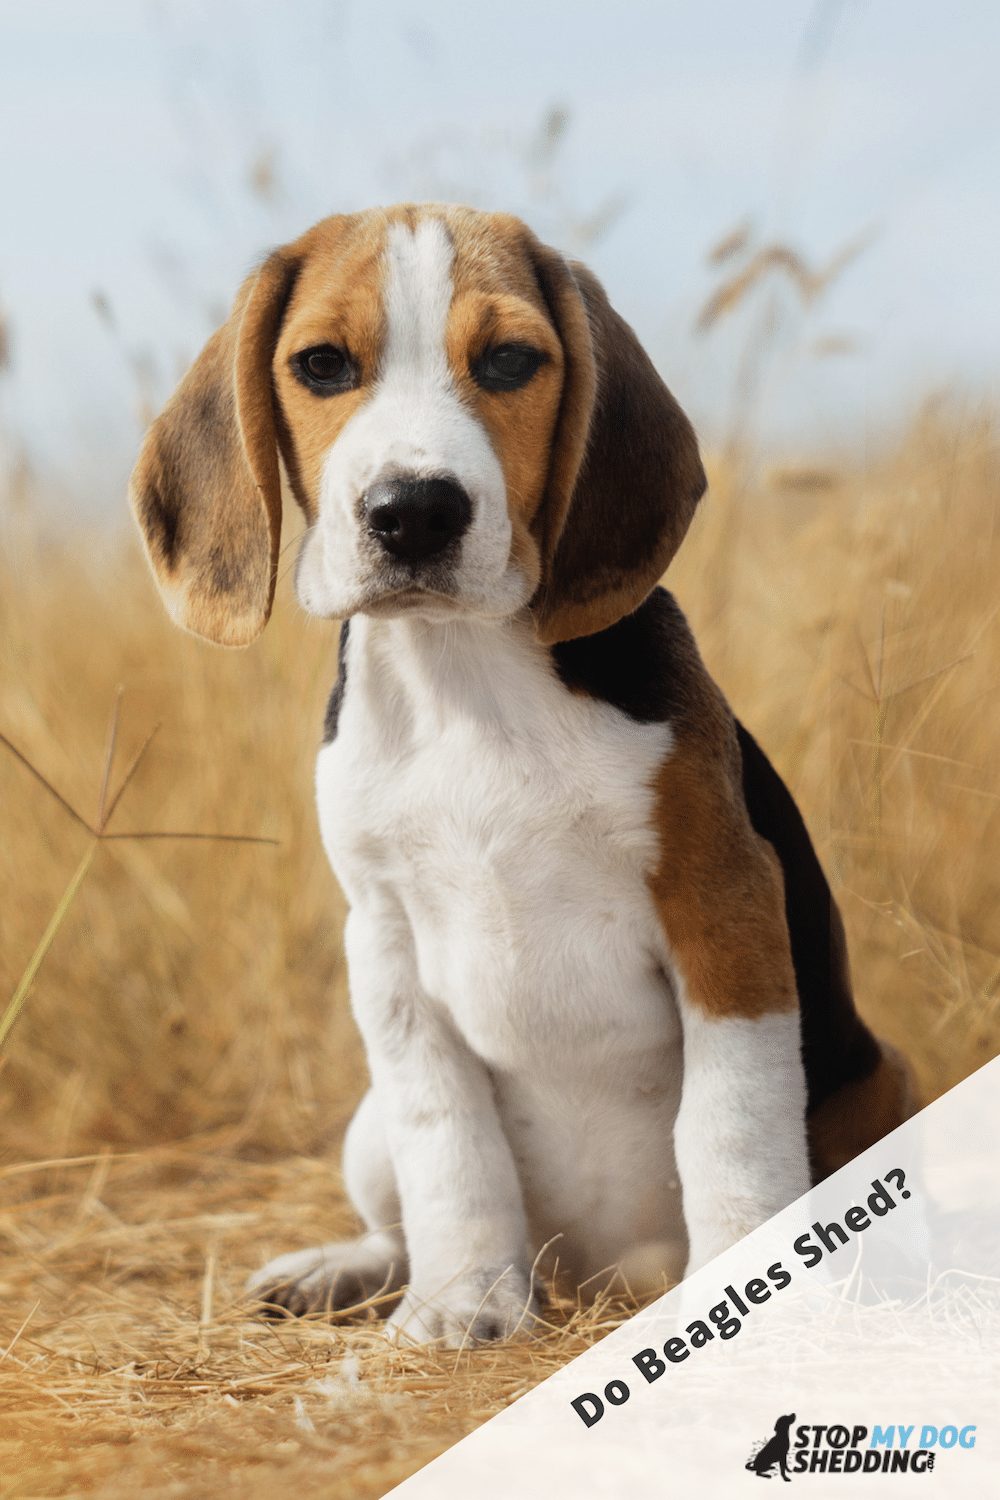 Do Beagles Shed Much? (Shedding Guide)